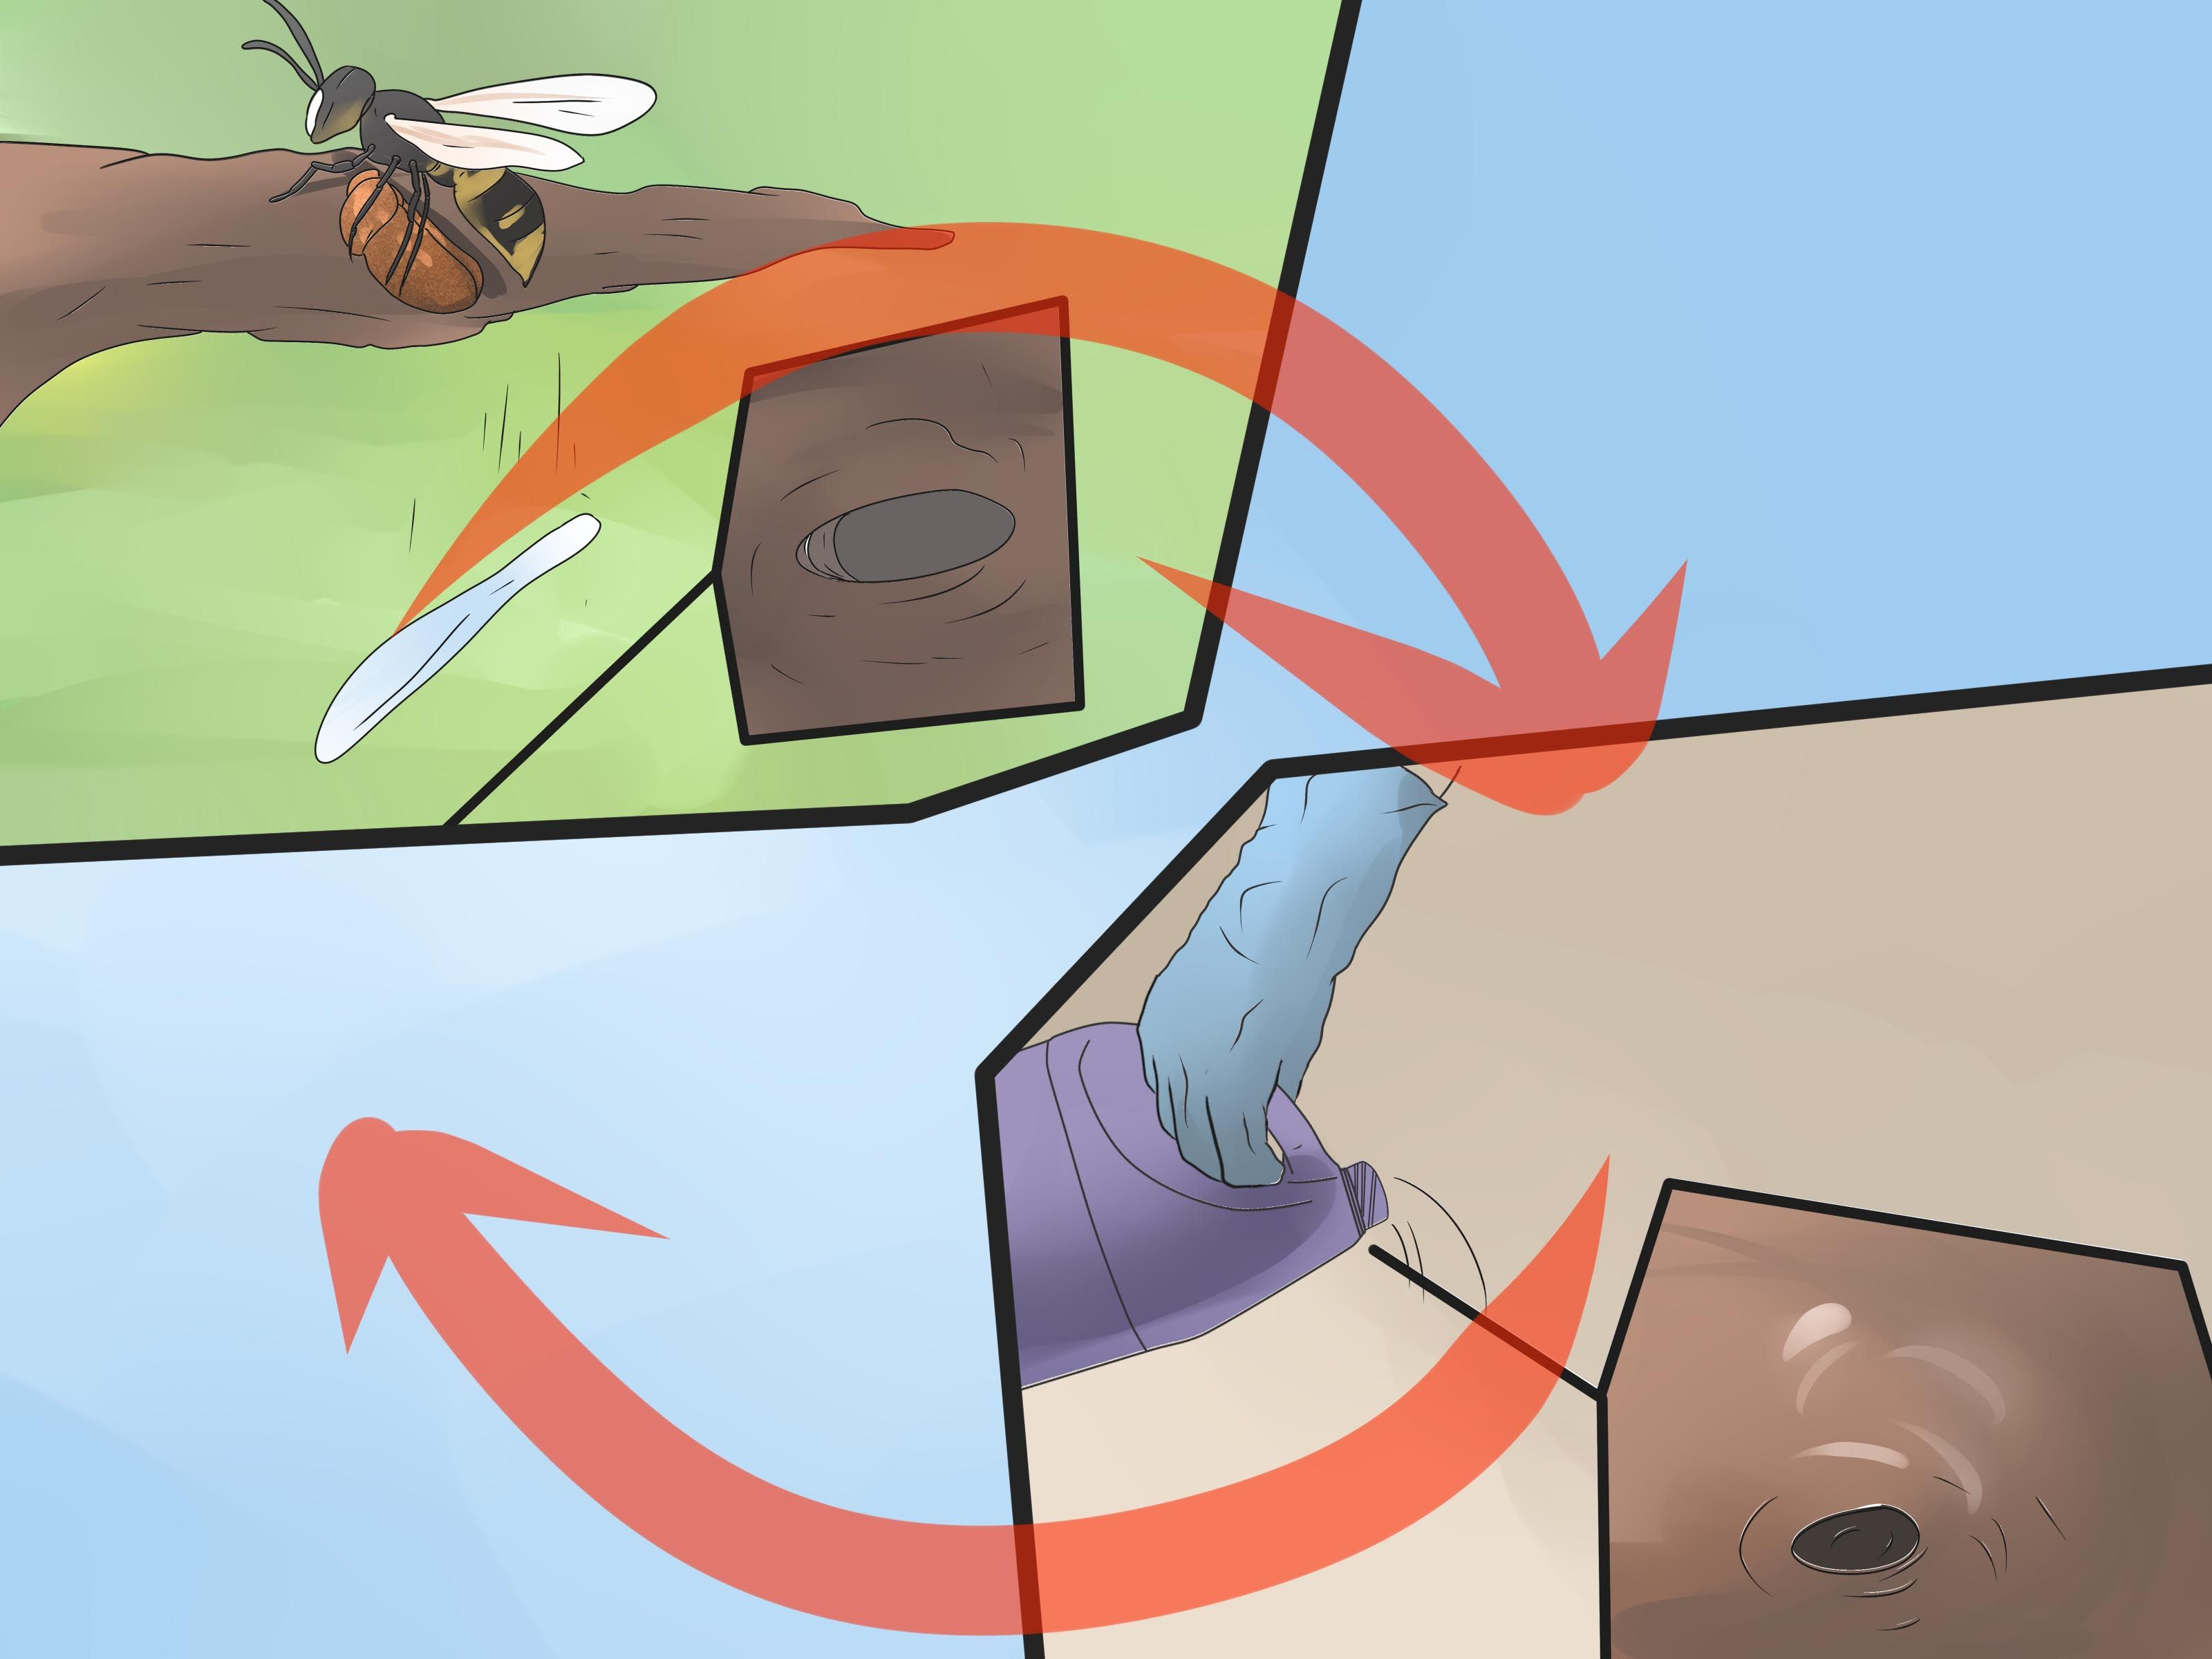 Get rid of ground digger wasps cicada killers from your